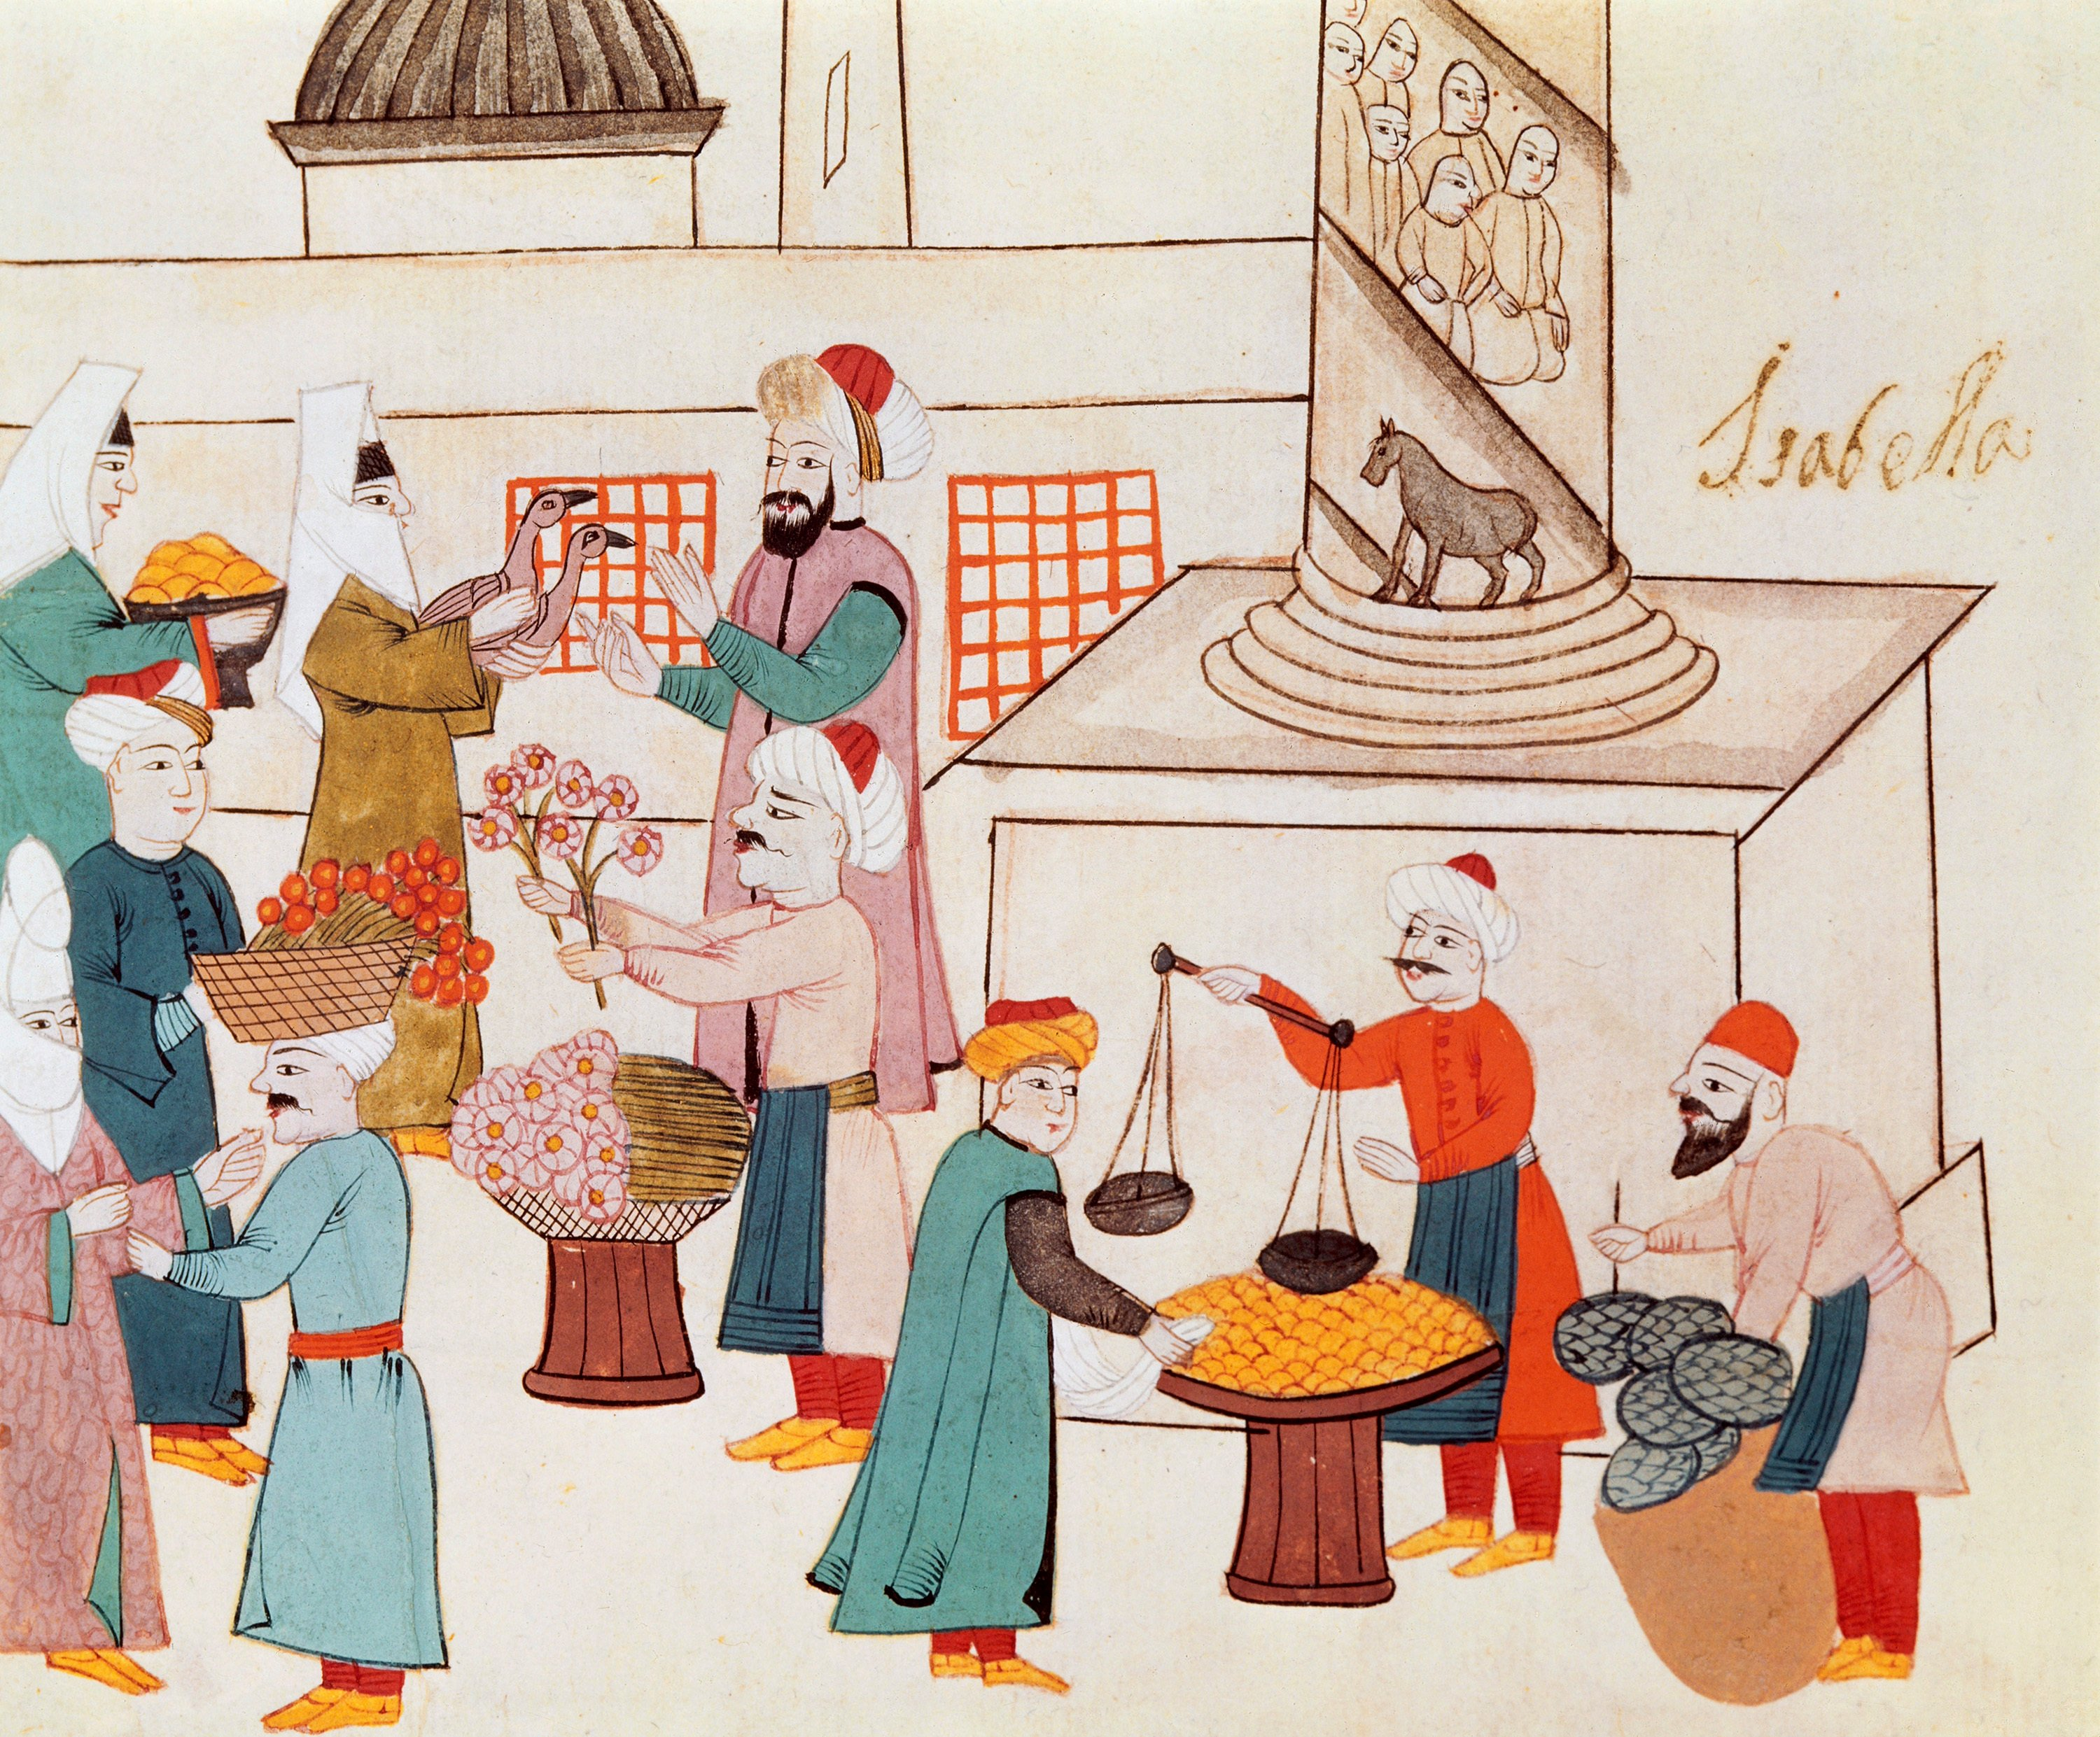 Some miniatures are focused on Ramadan highlights like this one depicting a Ramadan shopping scene in an Istanbul bazaar. (Photo by Getty Images)